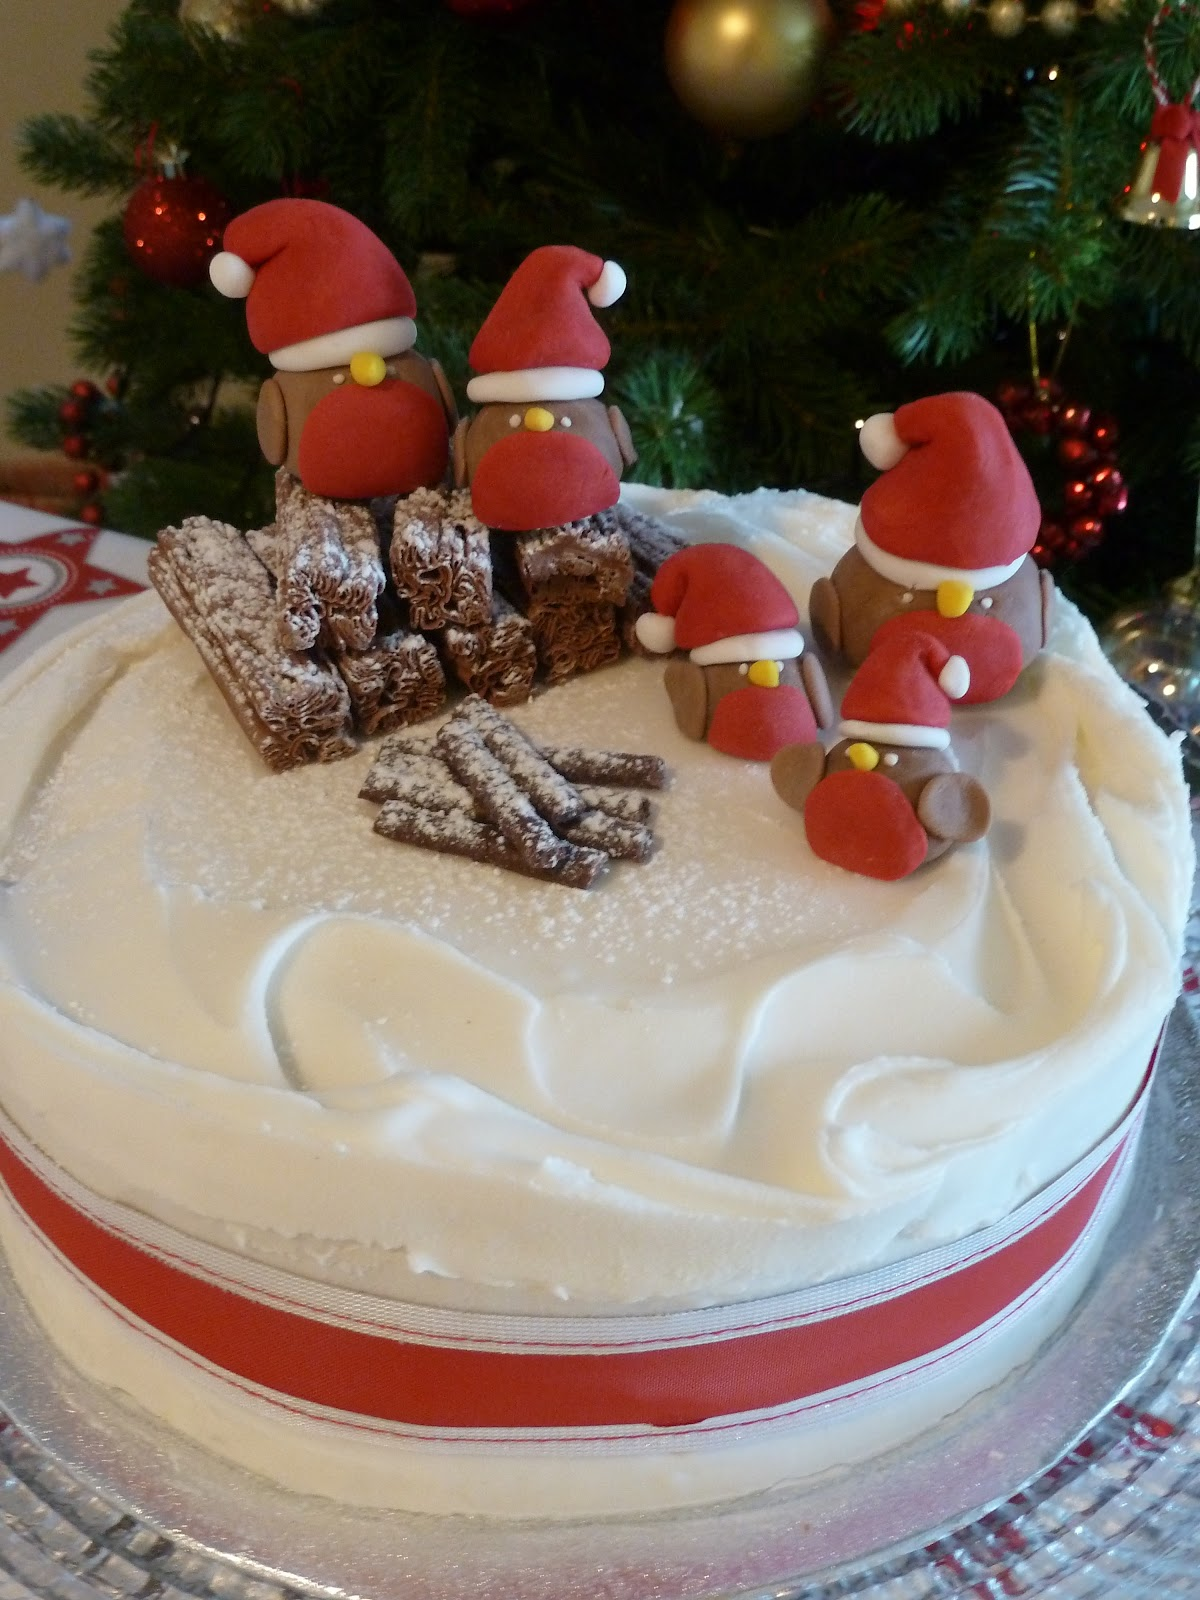 christmas cake decorated with swirled royal icing and sugar paste robins - Christmas Cake Decoration Ideas